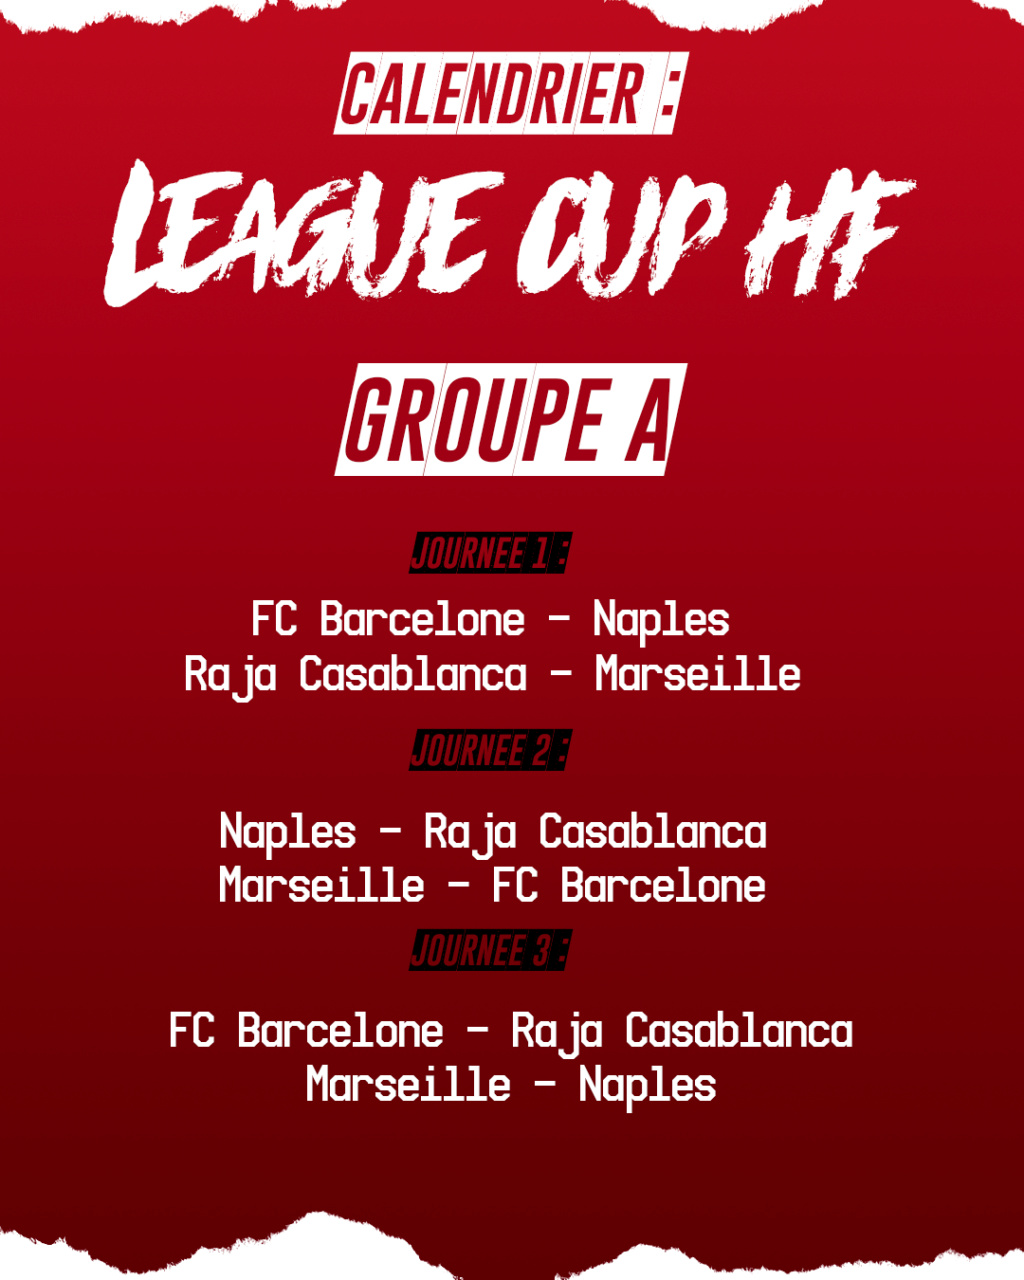 Calendrier League Cup HF : Groupe A Groupe13